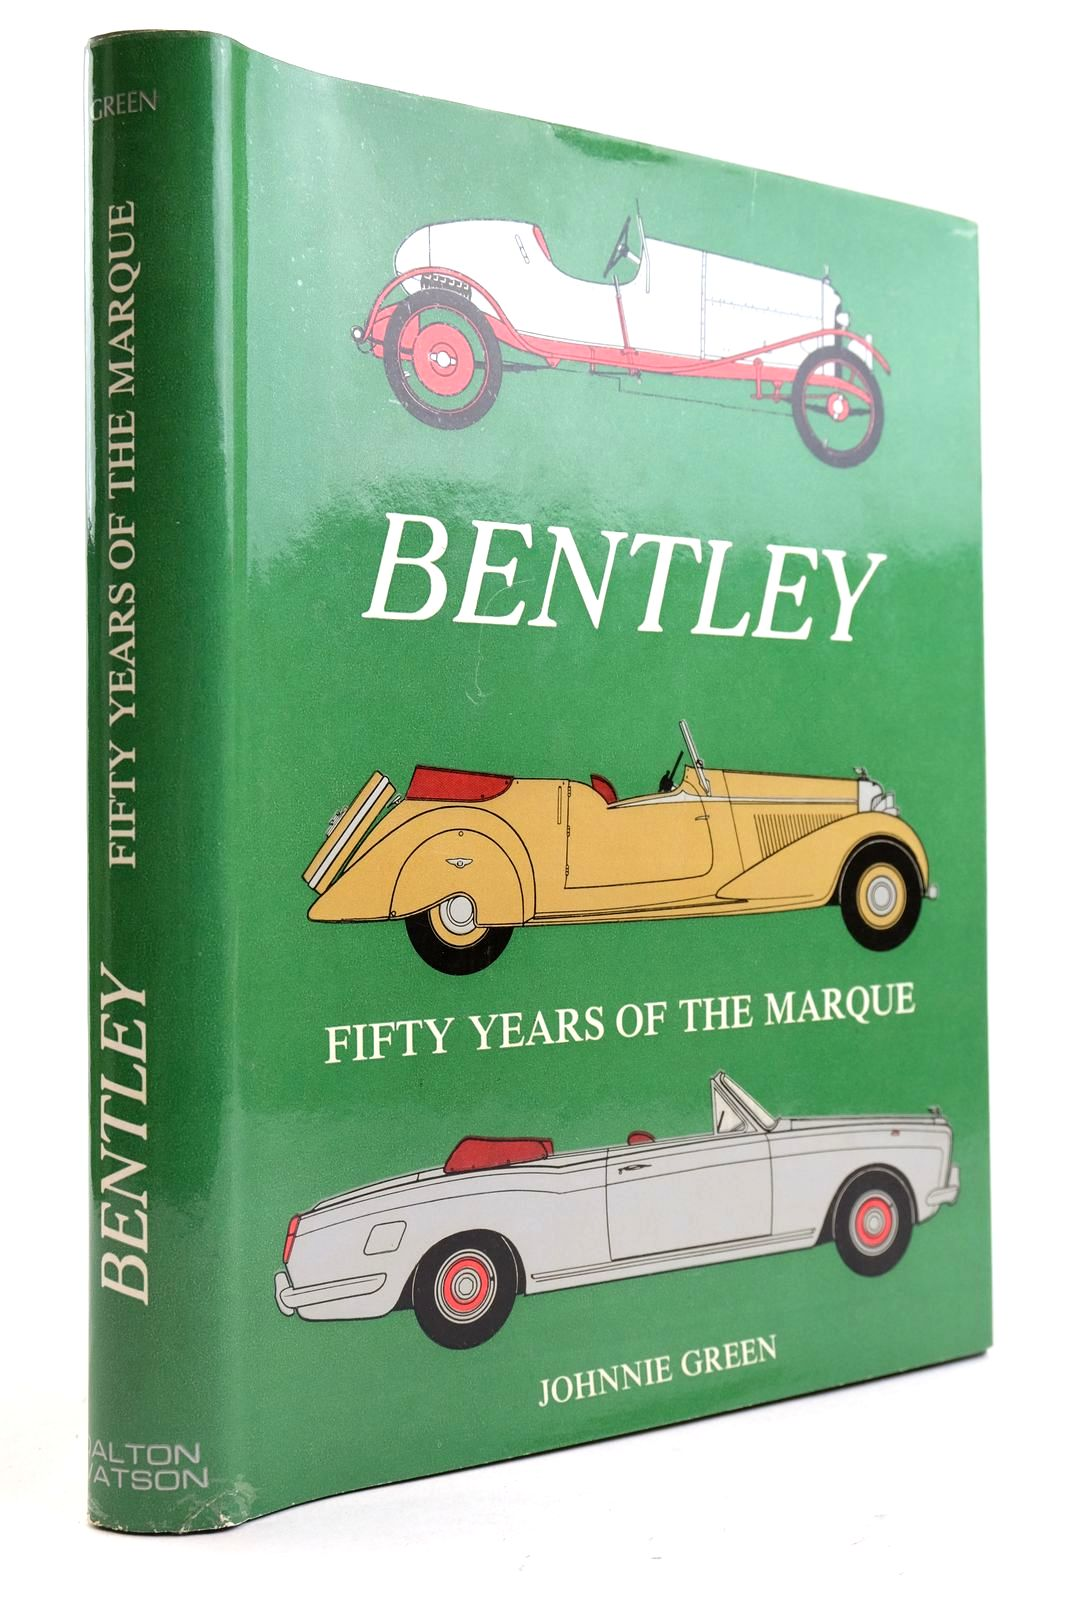 Photo of BENTLEY FIFTY YEARS OF THE MARQUE written by Green, Johnnie published by Dalton Watson (STOCK CODE: 2133096)  for sale by Stella & Rose's Books